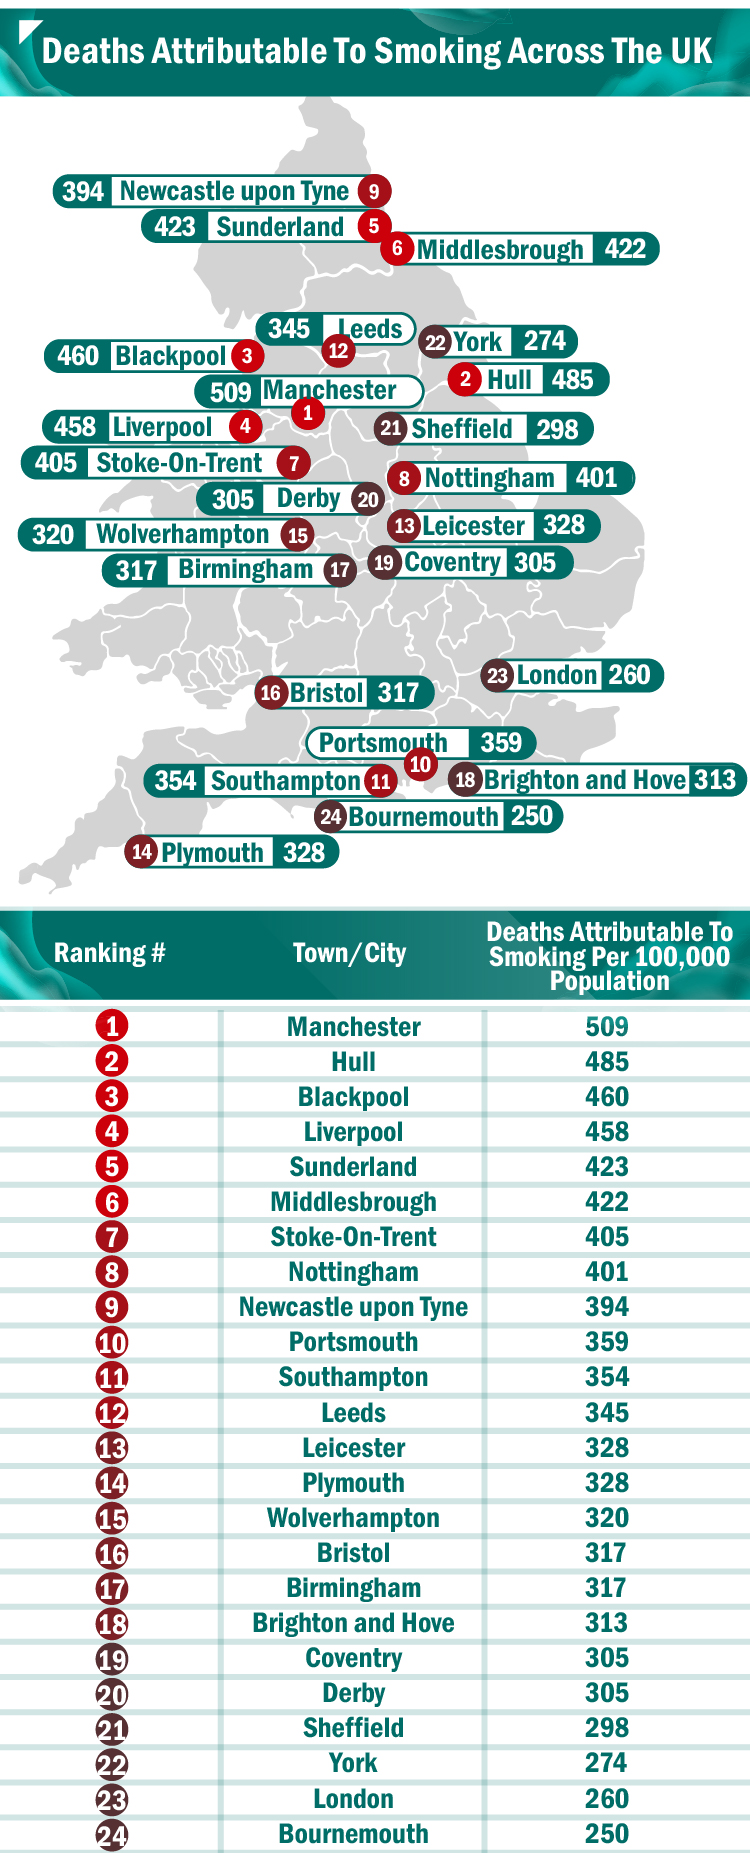 deaths-by-smoking-across-the-uk